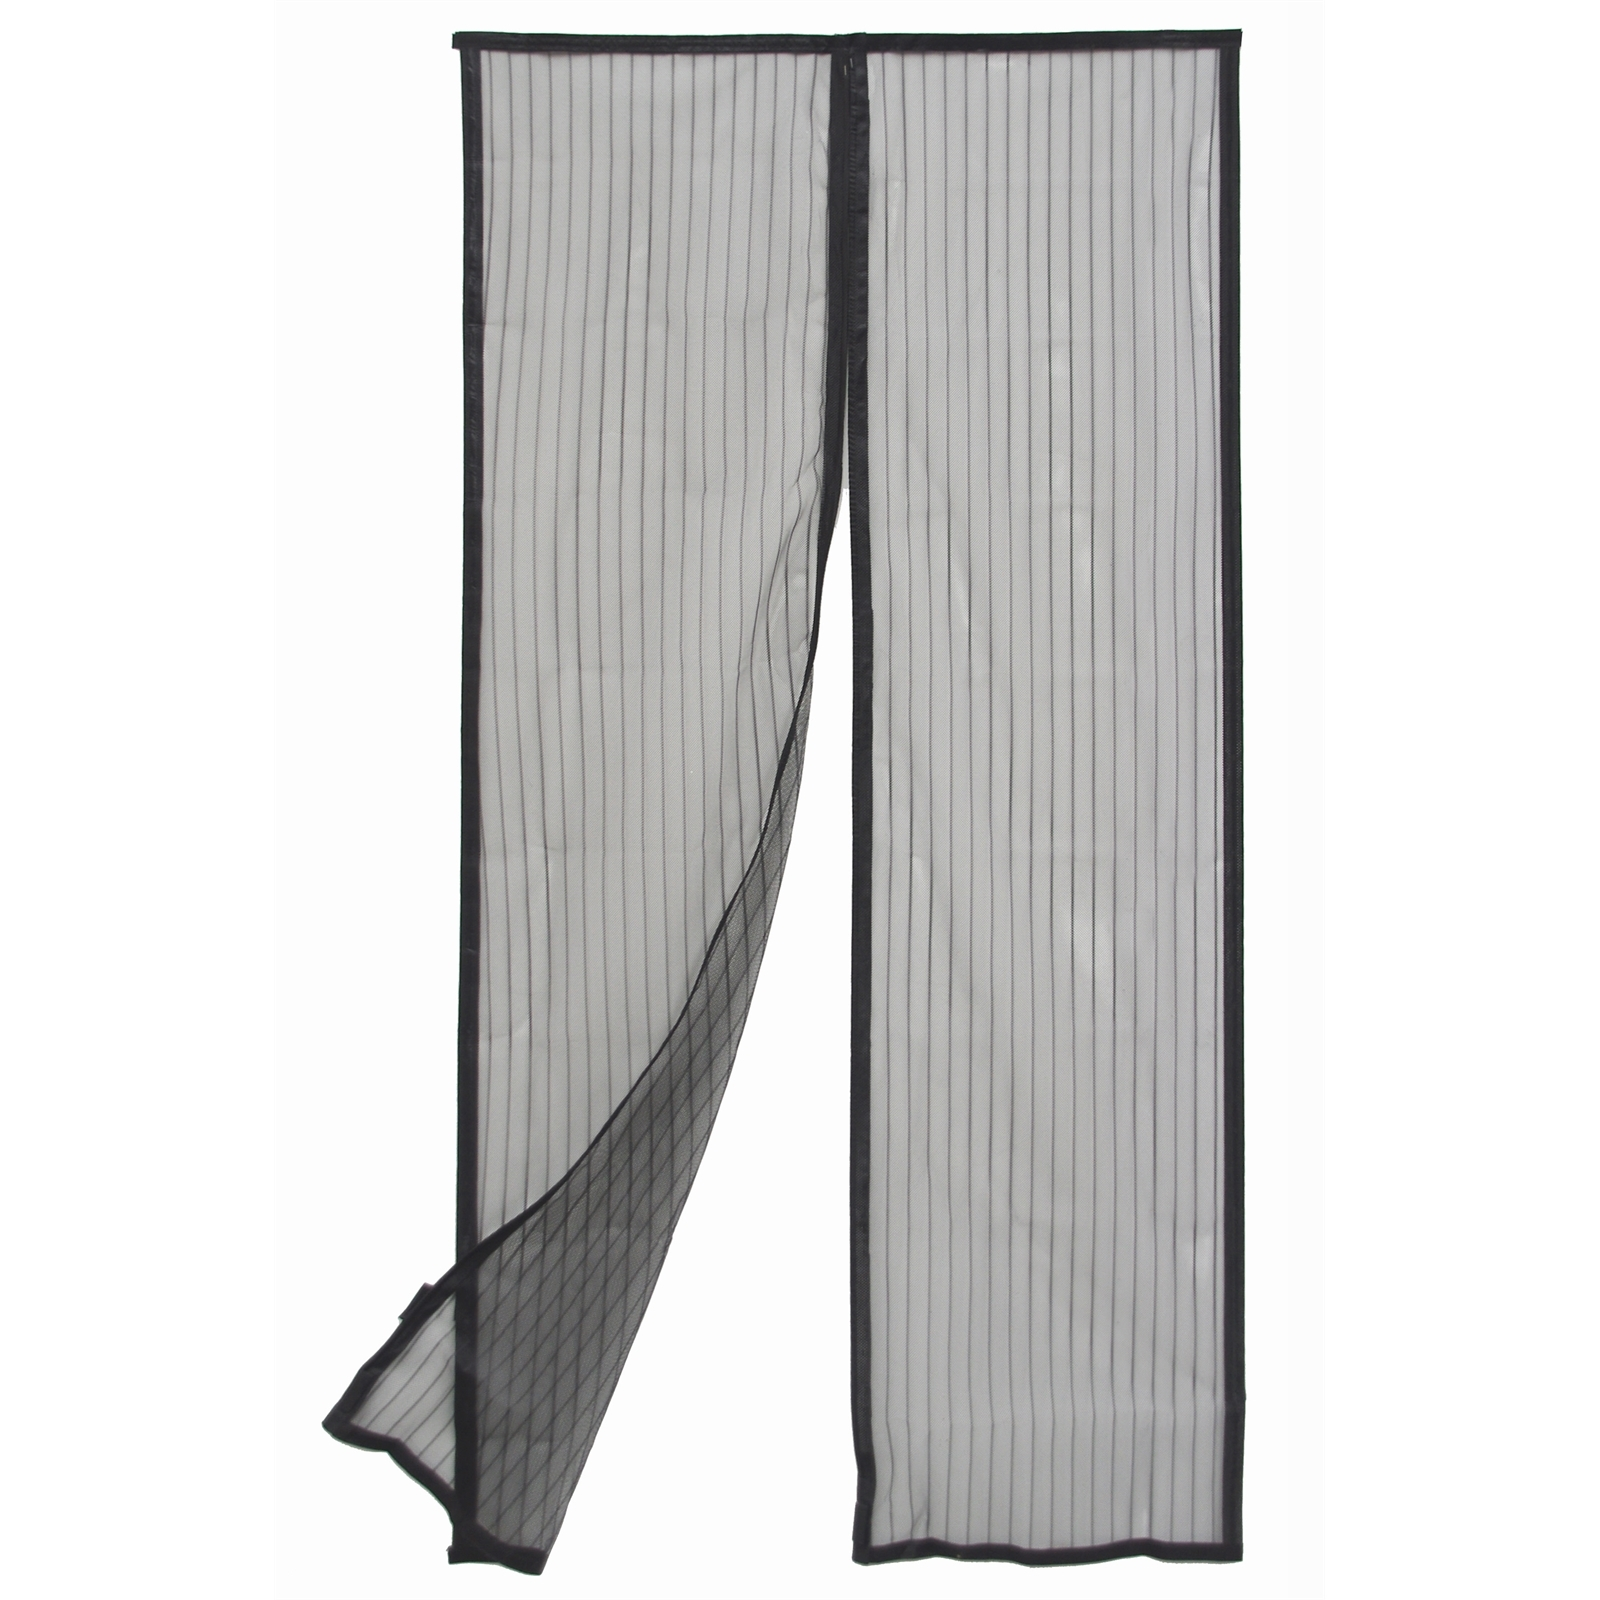 pillar products 90 x 200cm black magnetic flyscreen door curtain